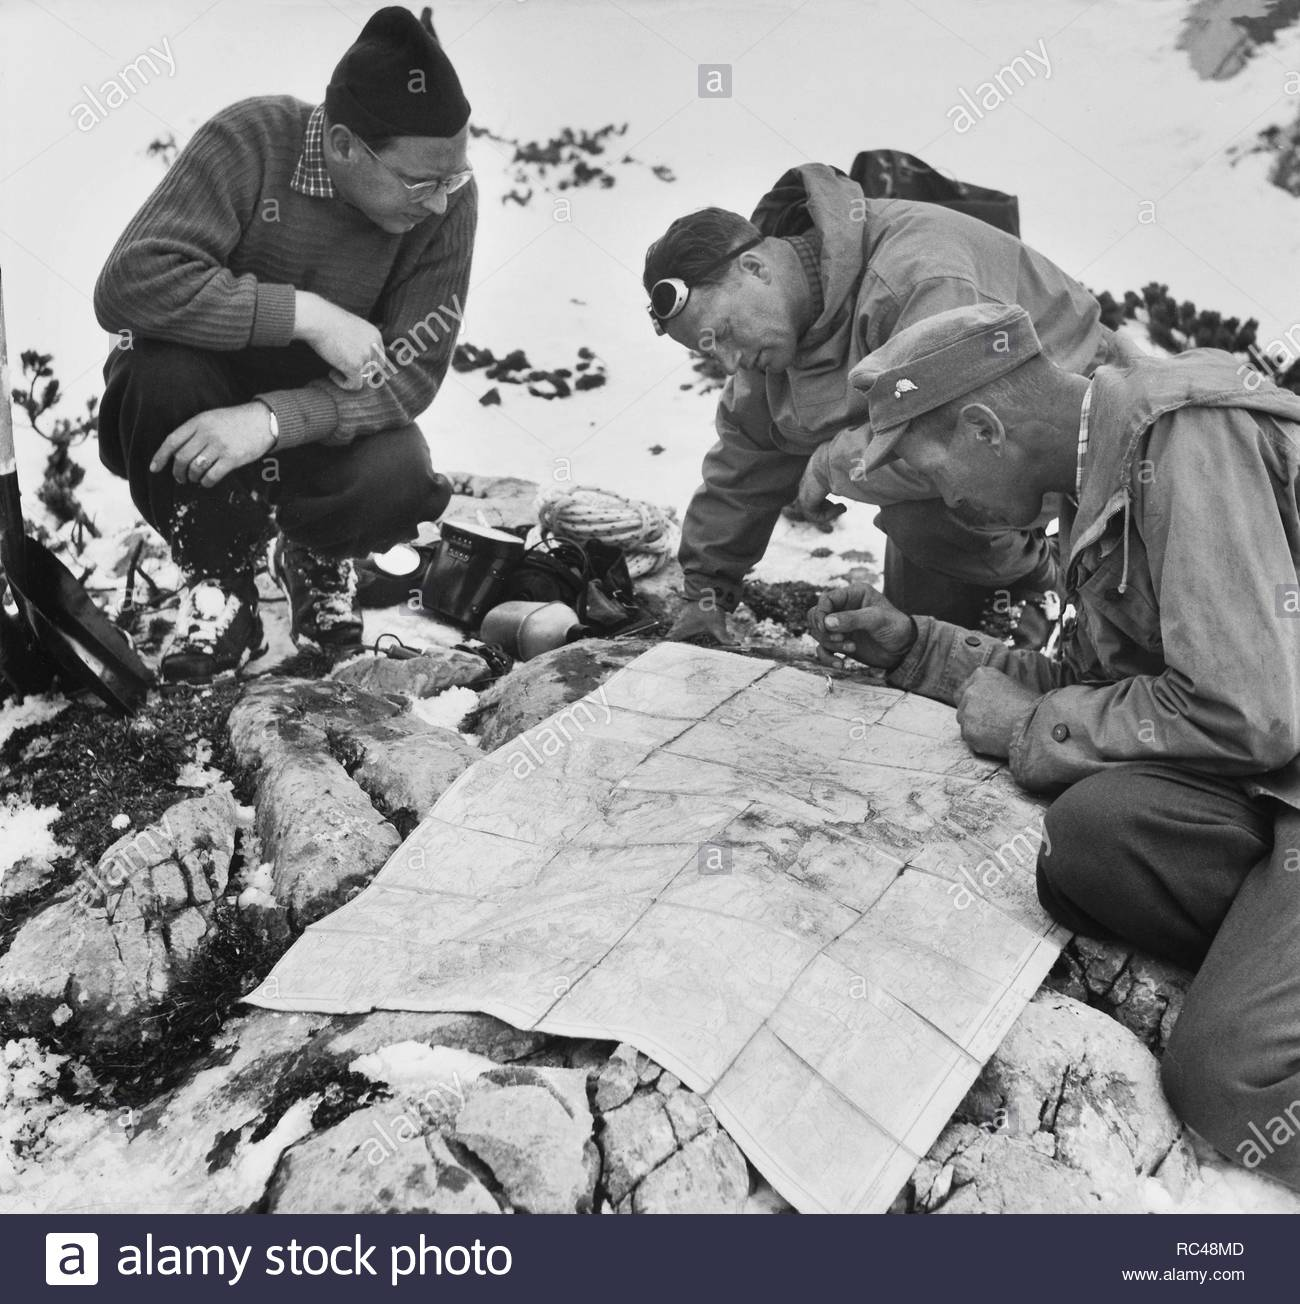 Map Of Germany Post World War Ii Stock Photos & Map Of Germany Post ...